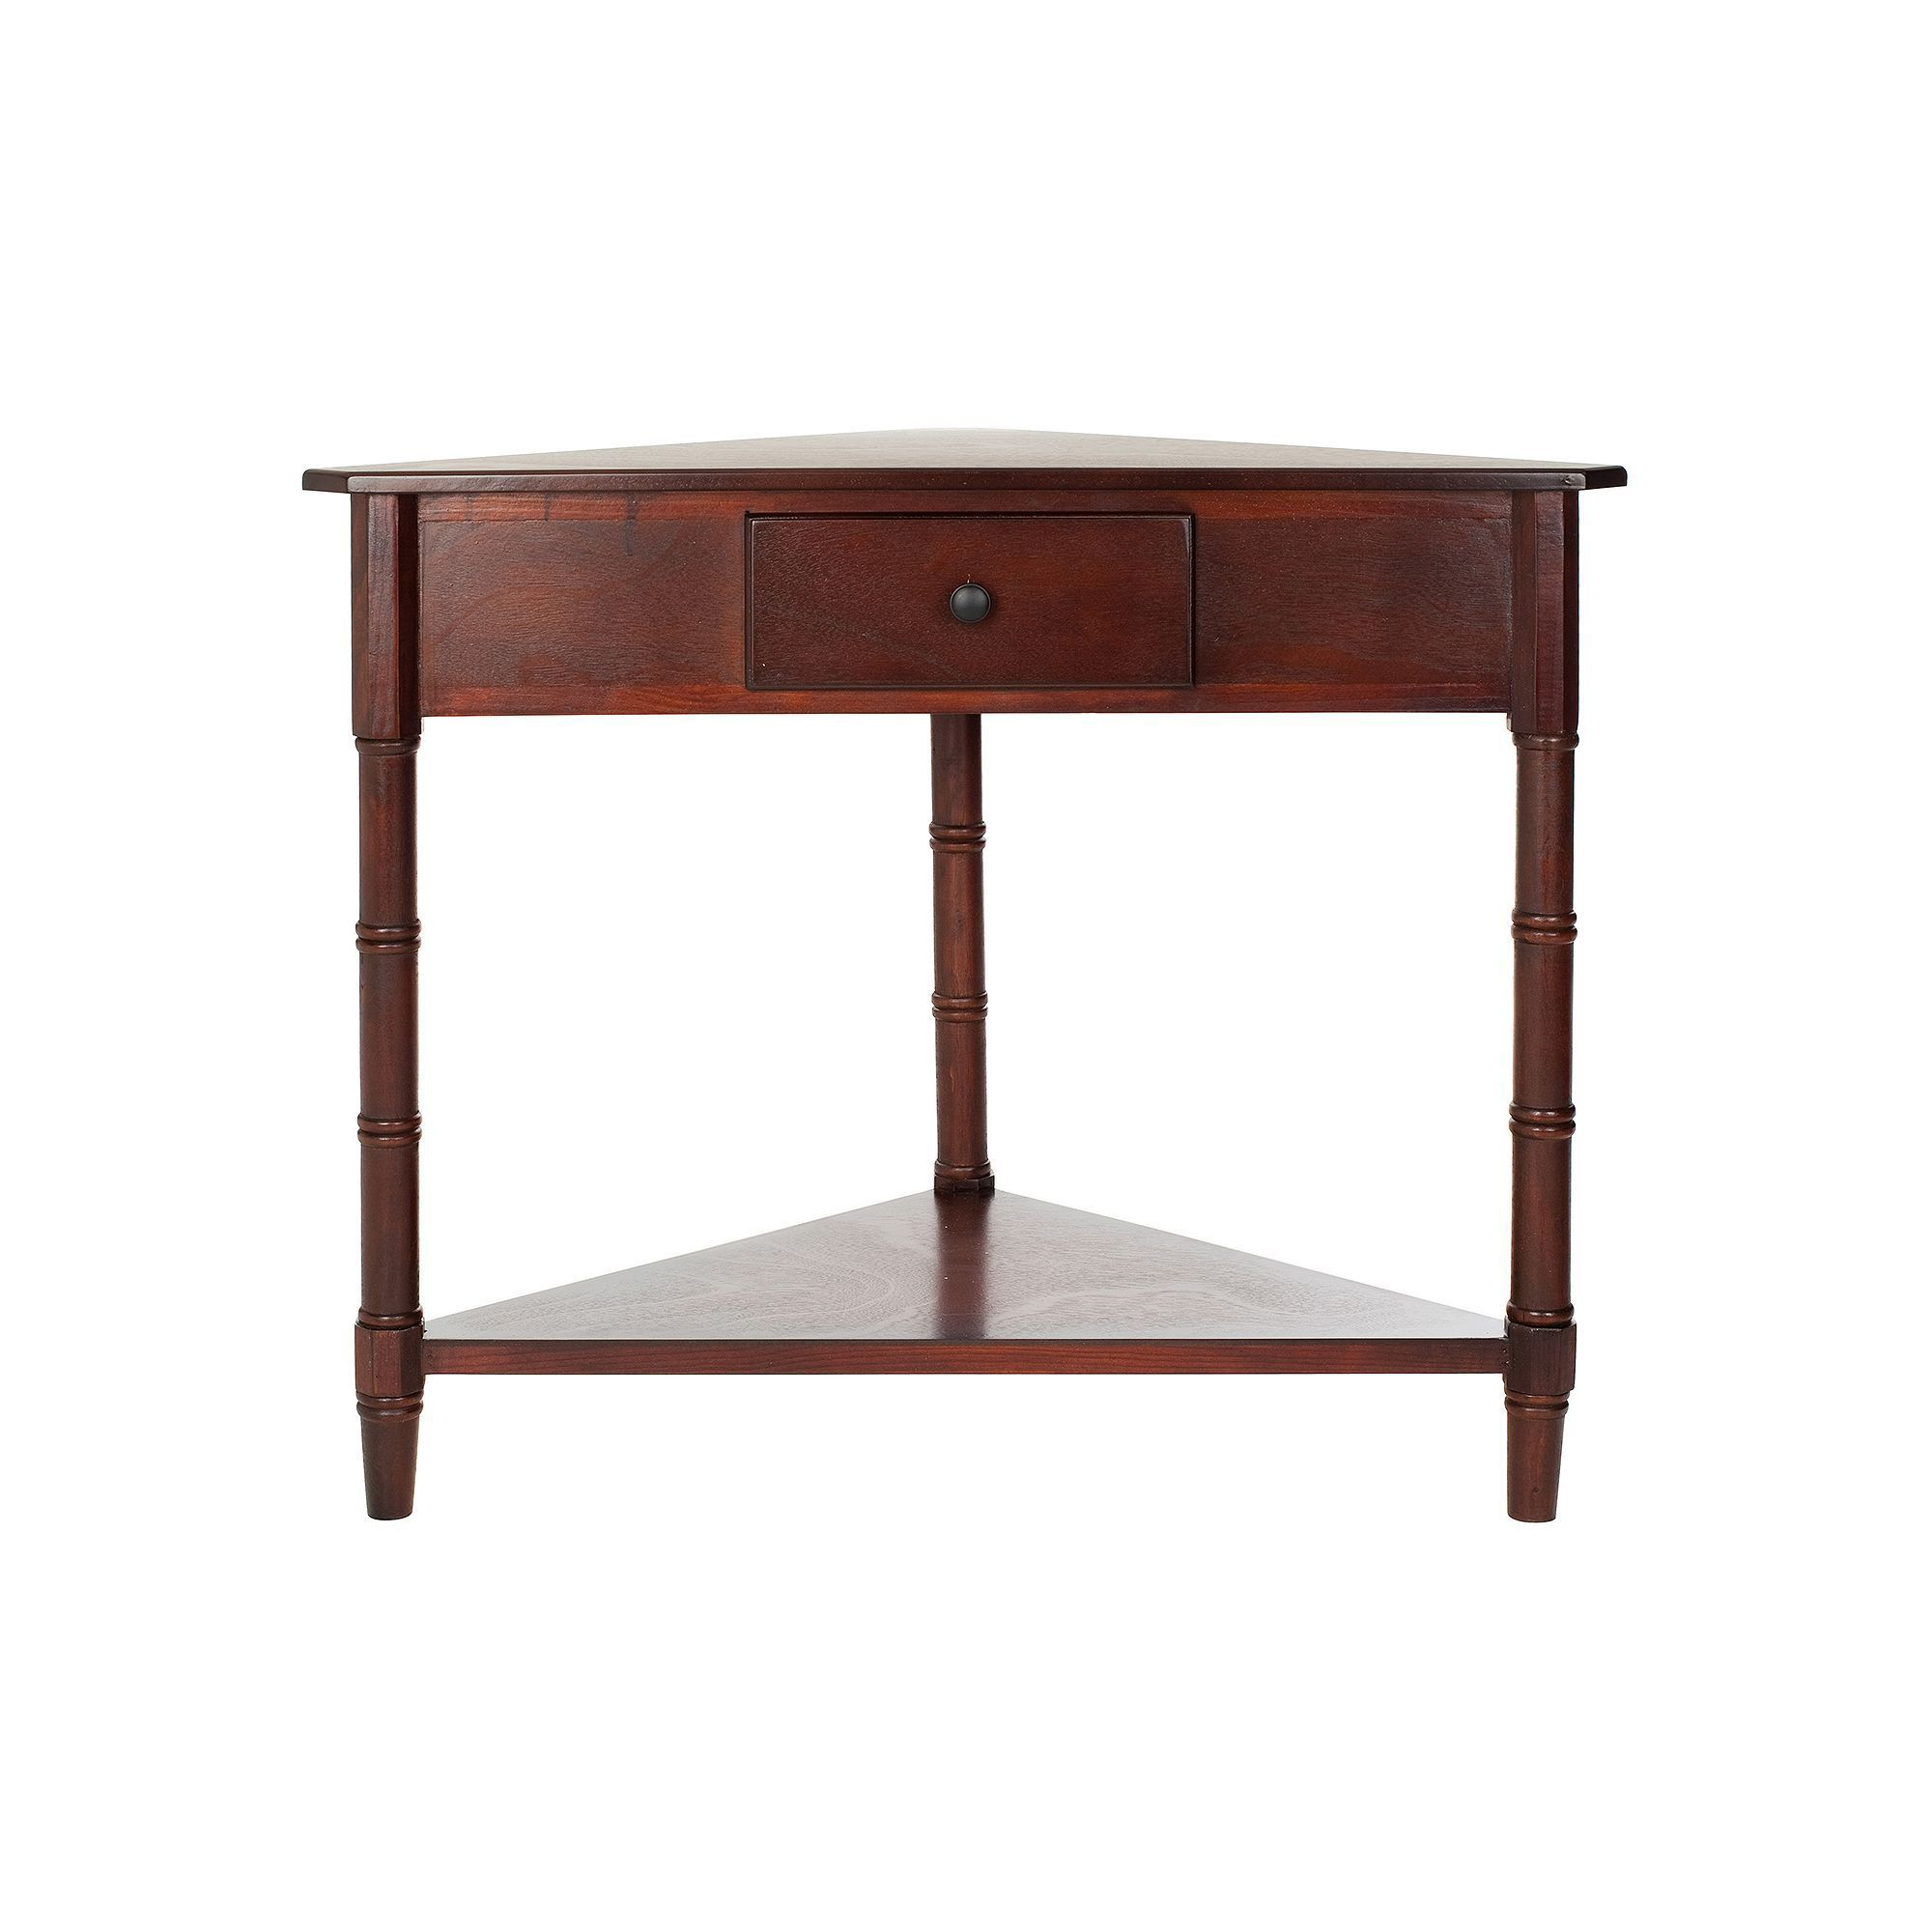 safavieh gomez corner accent table products collections brown mango wood computer target upholstered dining chairs living room storage cabinets with doors pottery barn chest